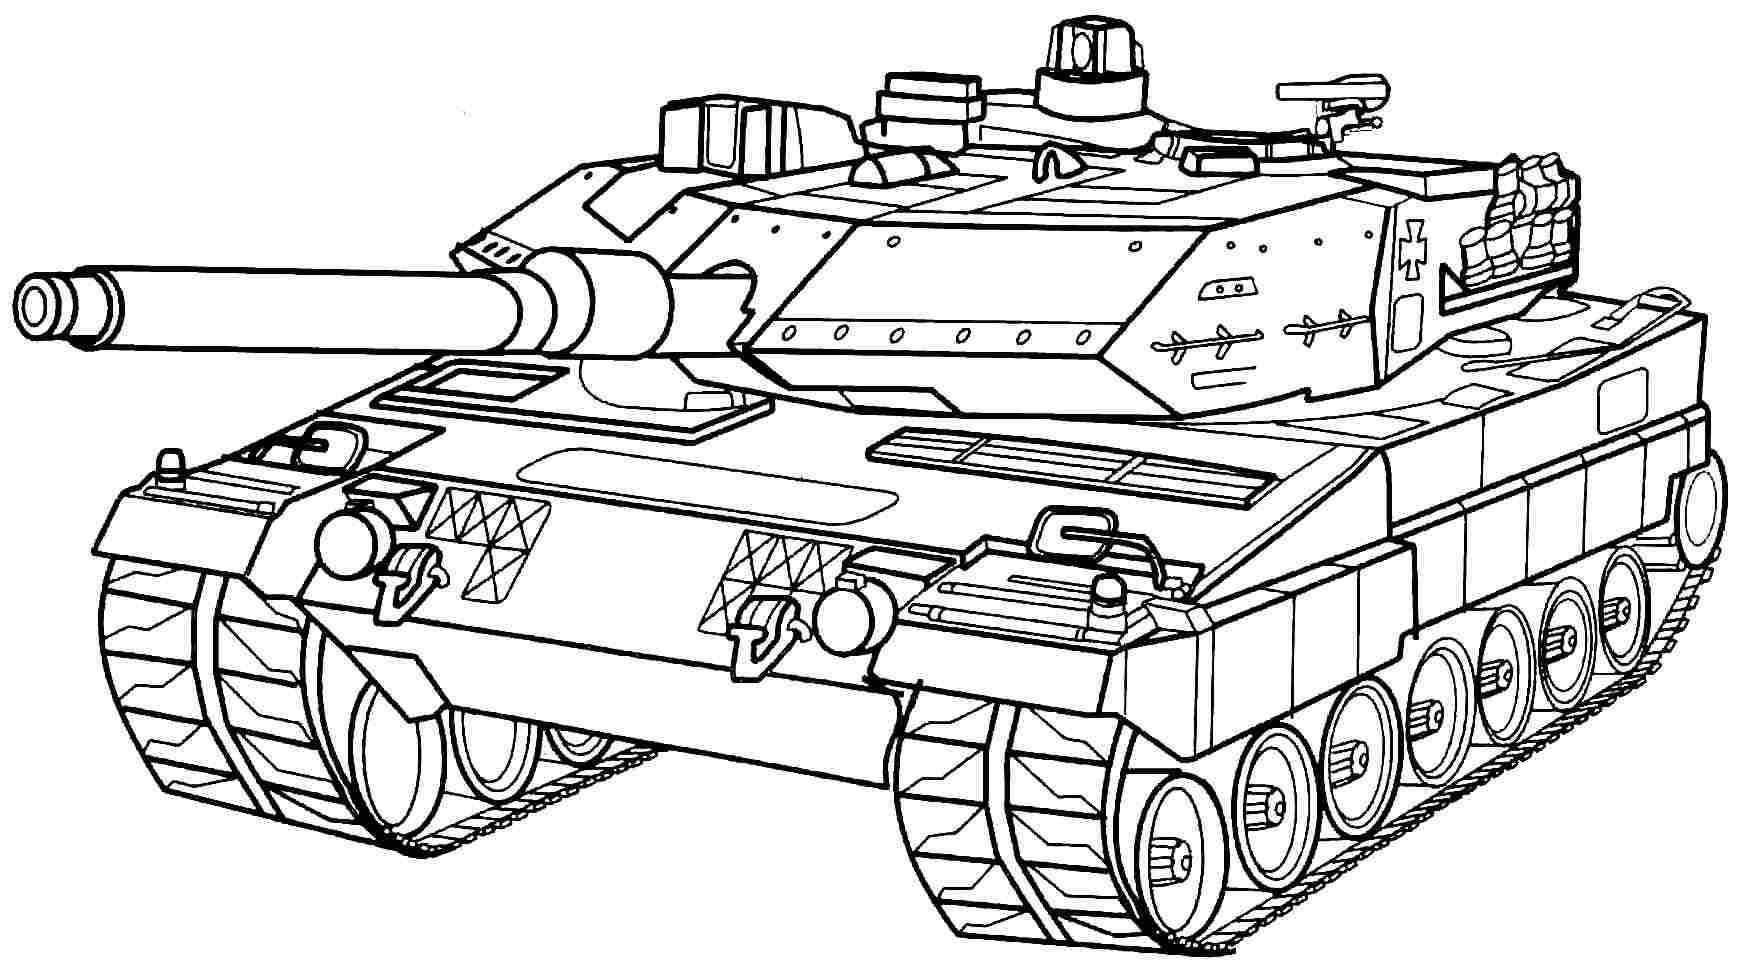 army tank coloring pictures army tanks drawing at getdrawings free download coloring tank pictures army